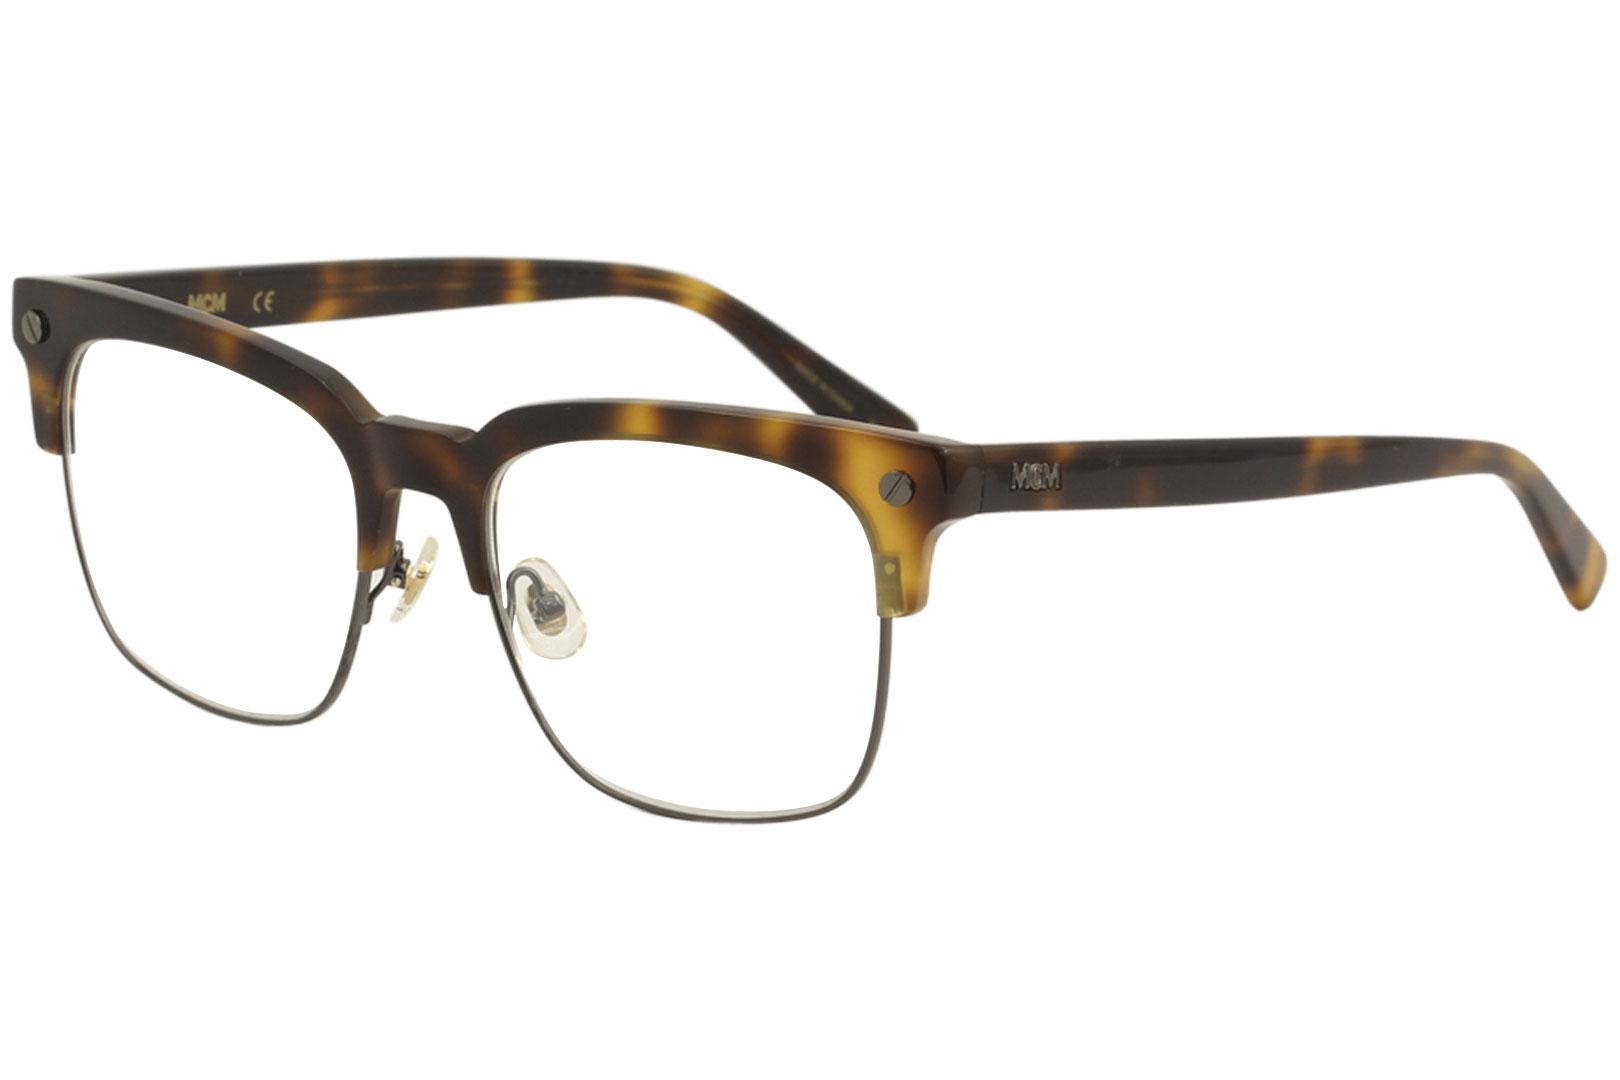 3290a7e242 MCM Men s Eyeglasses 2625 Full Rim Optical Frame